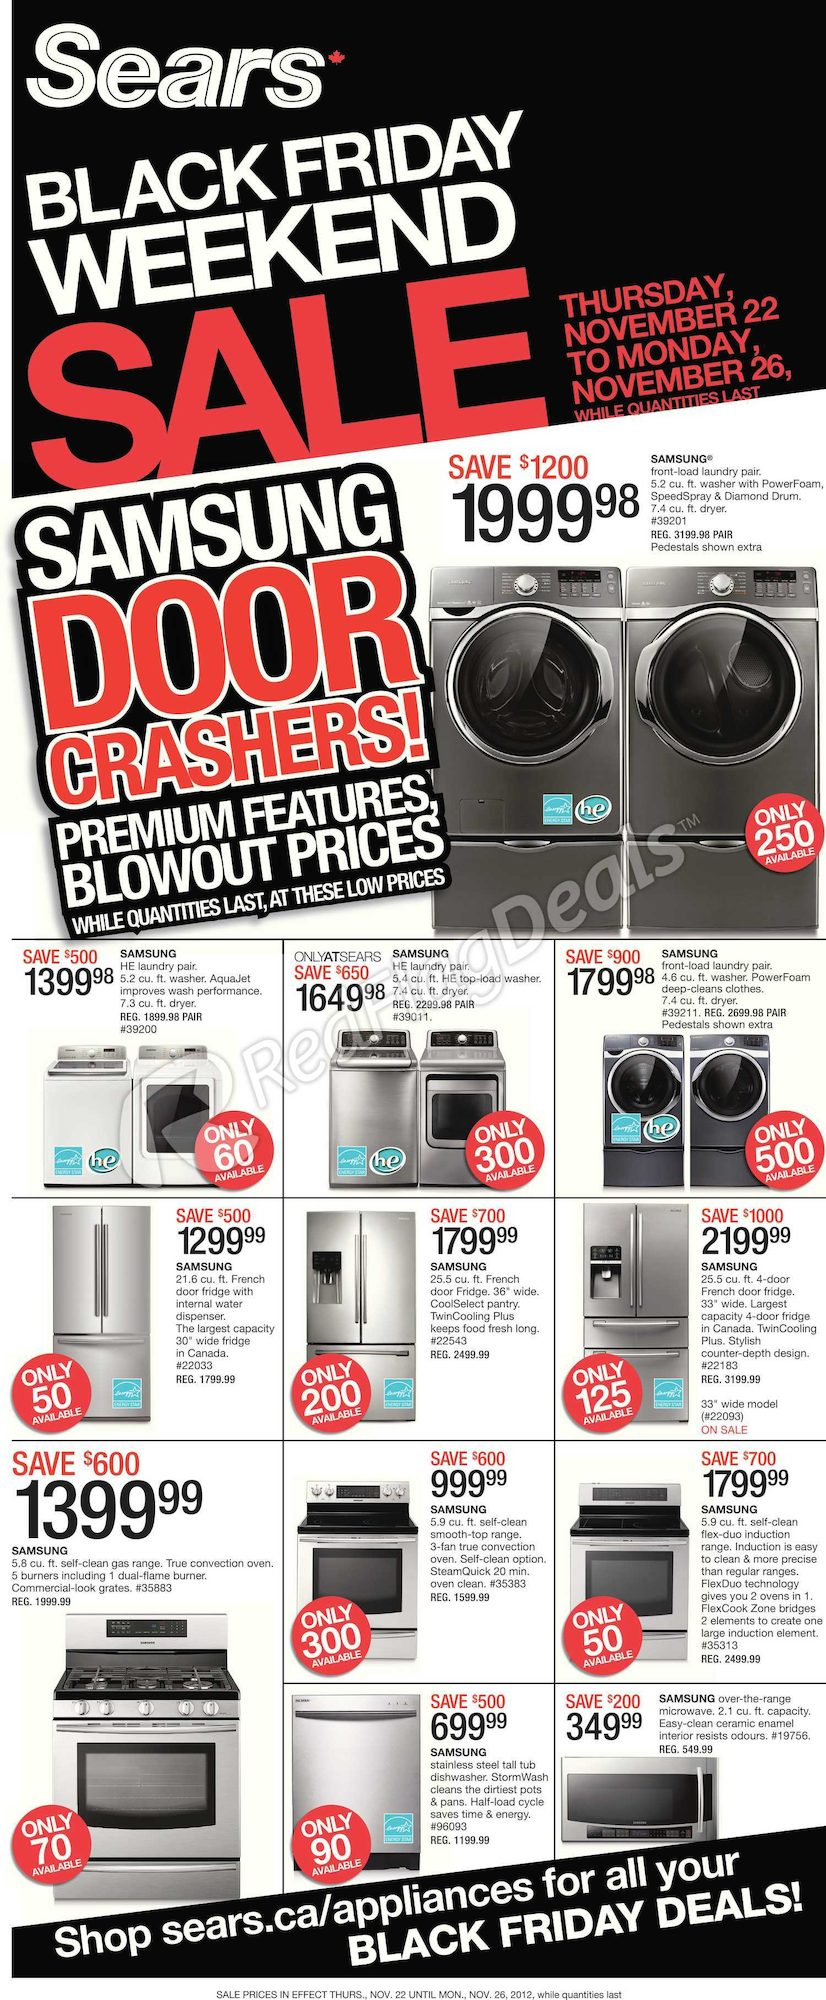 Sears Weekly Flyer Black Friday Home Appliance Sale